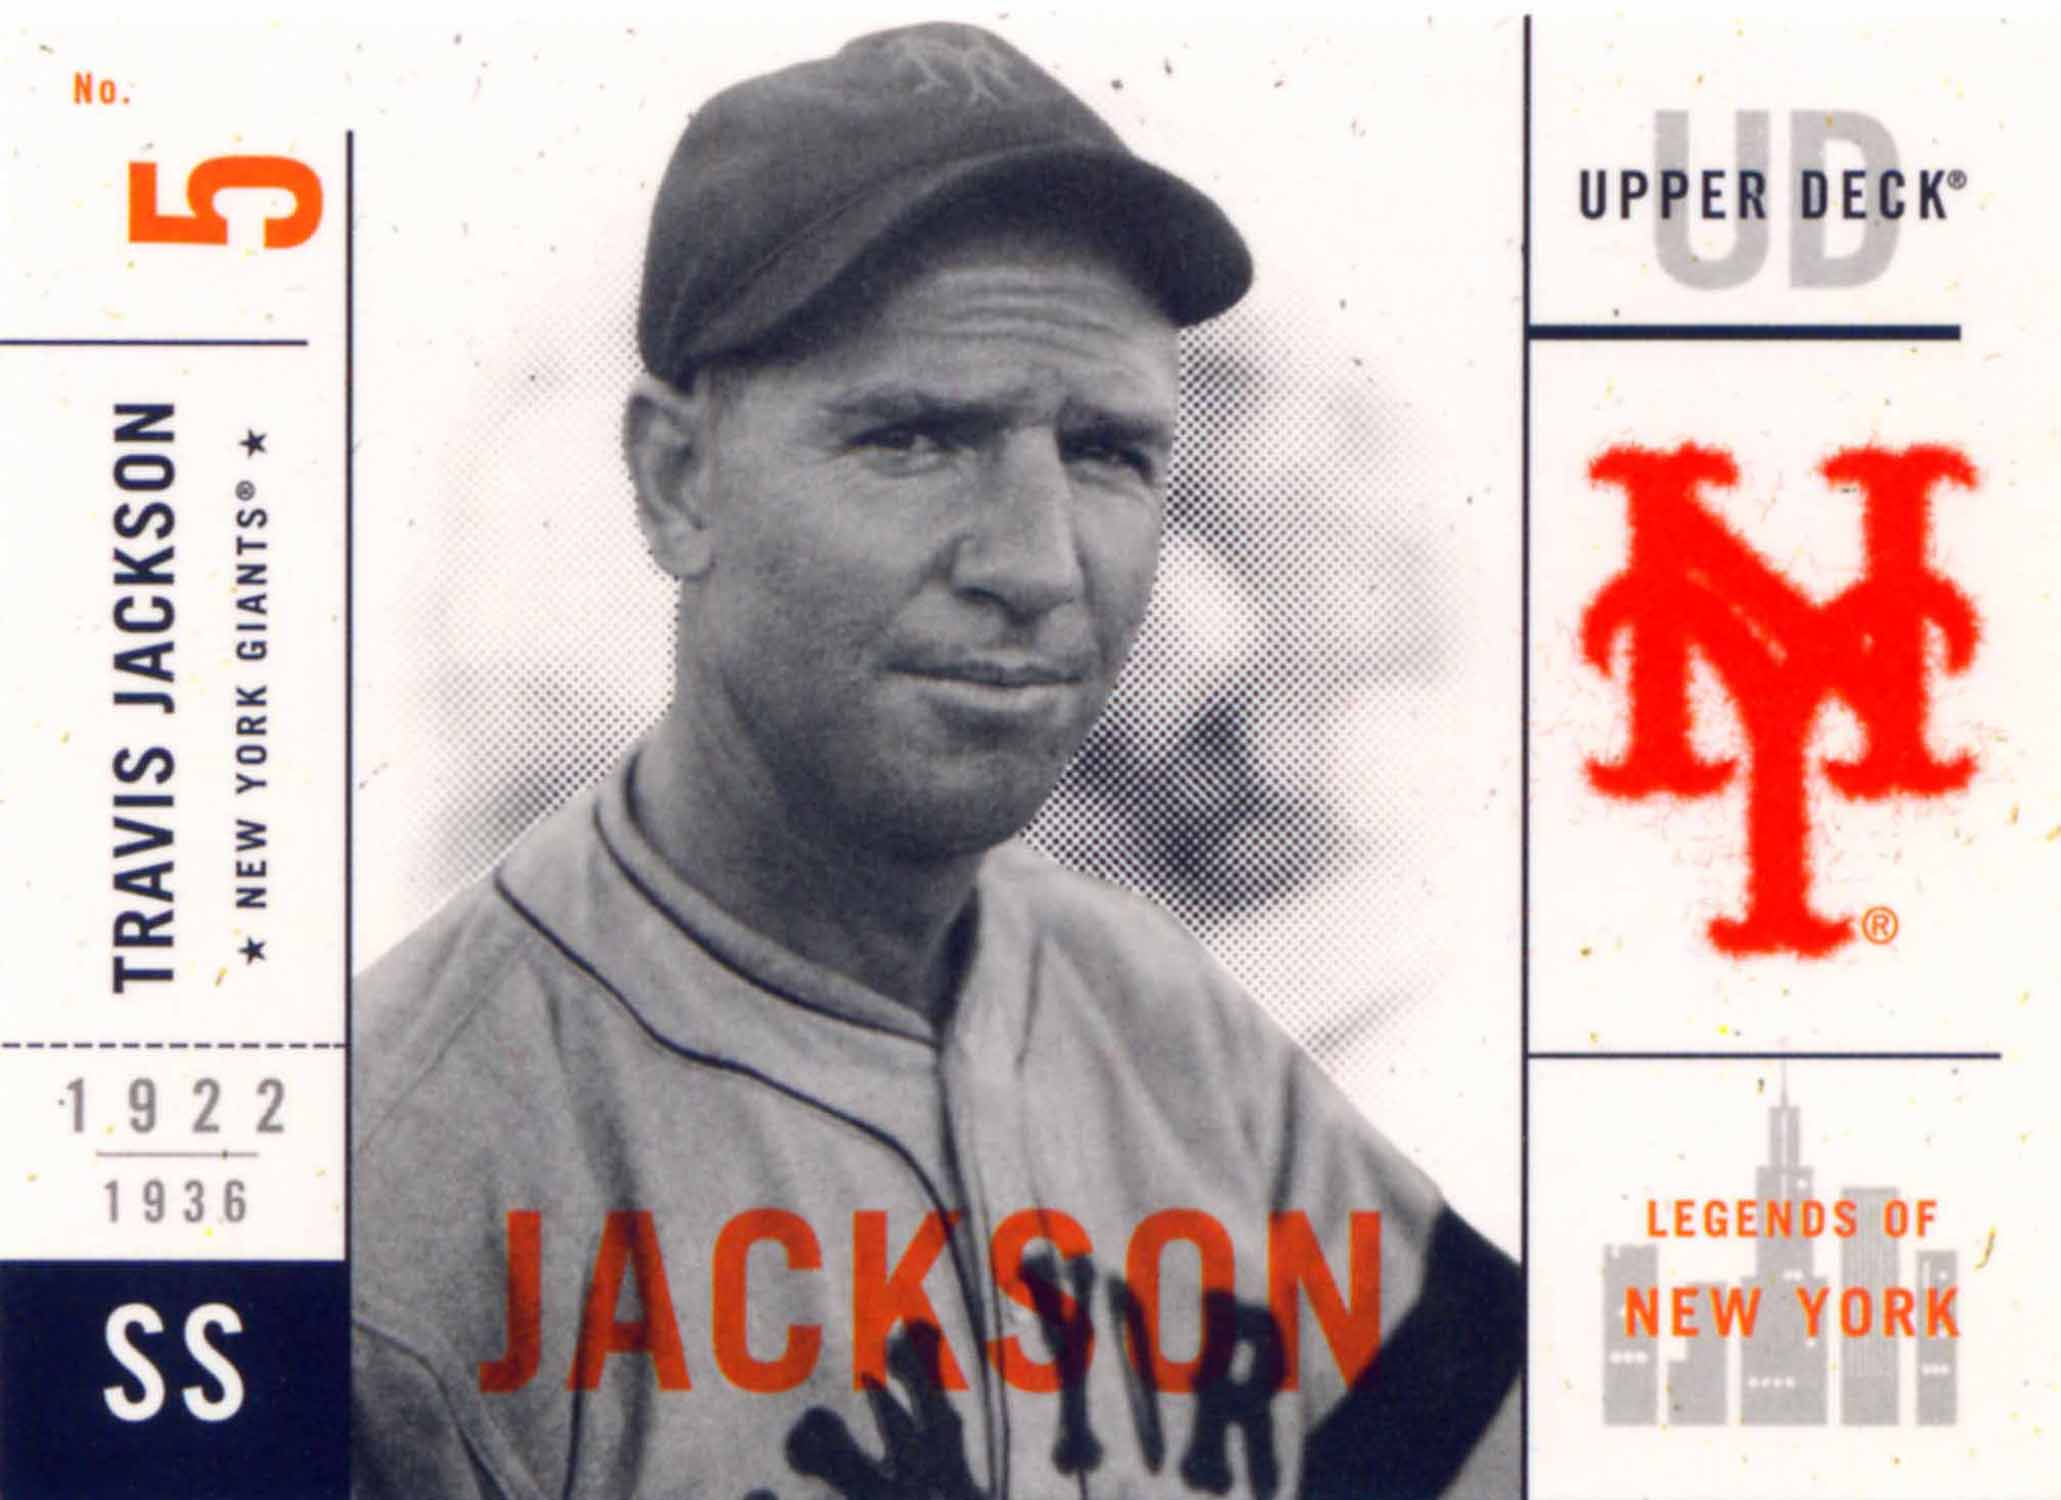 2001 Upper Deck Legends of New York